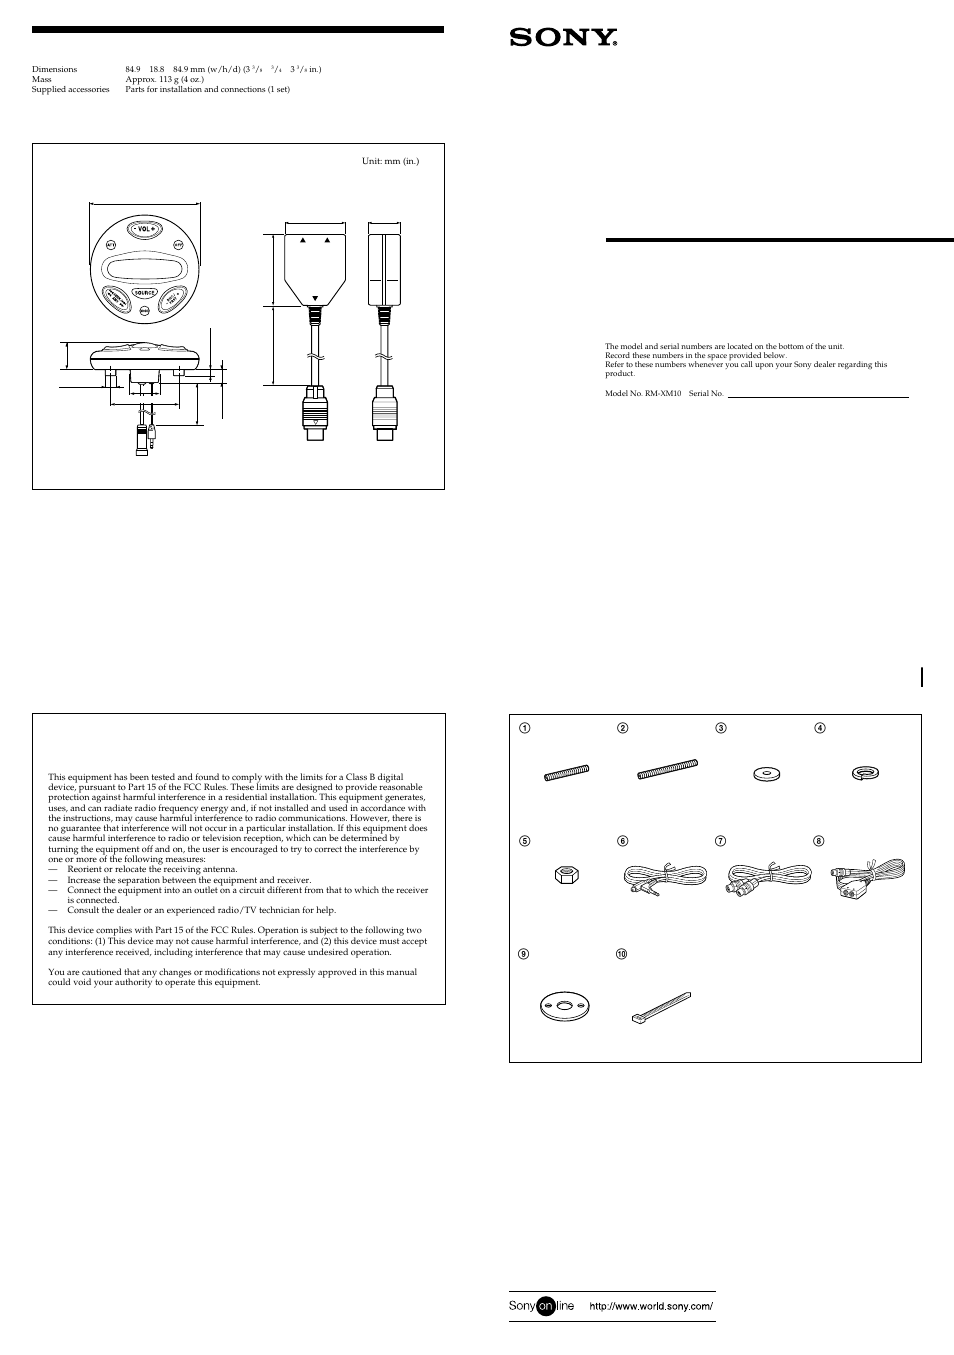 Sony Rm Xm10b User Manual 2 Pages Also For Xm10 Marine Stereo Wiring Diagram